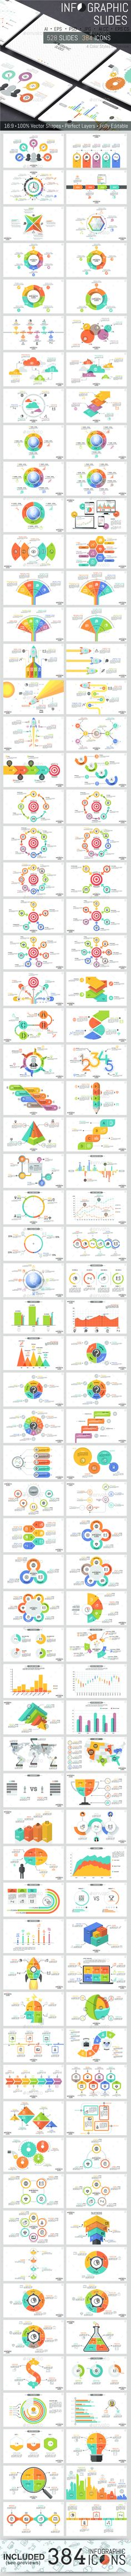 #Infographic Slides - Infographics Download here: https://graphicriver.net/item/infographic-slides/20022149?ref=alena994